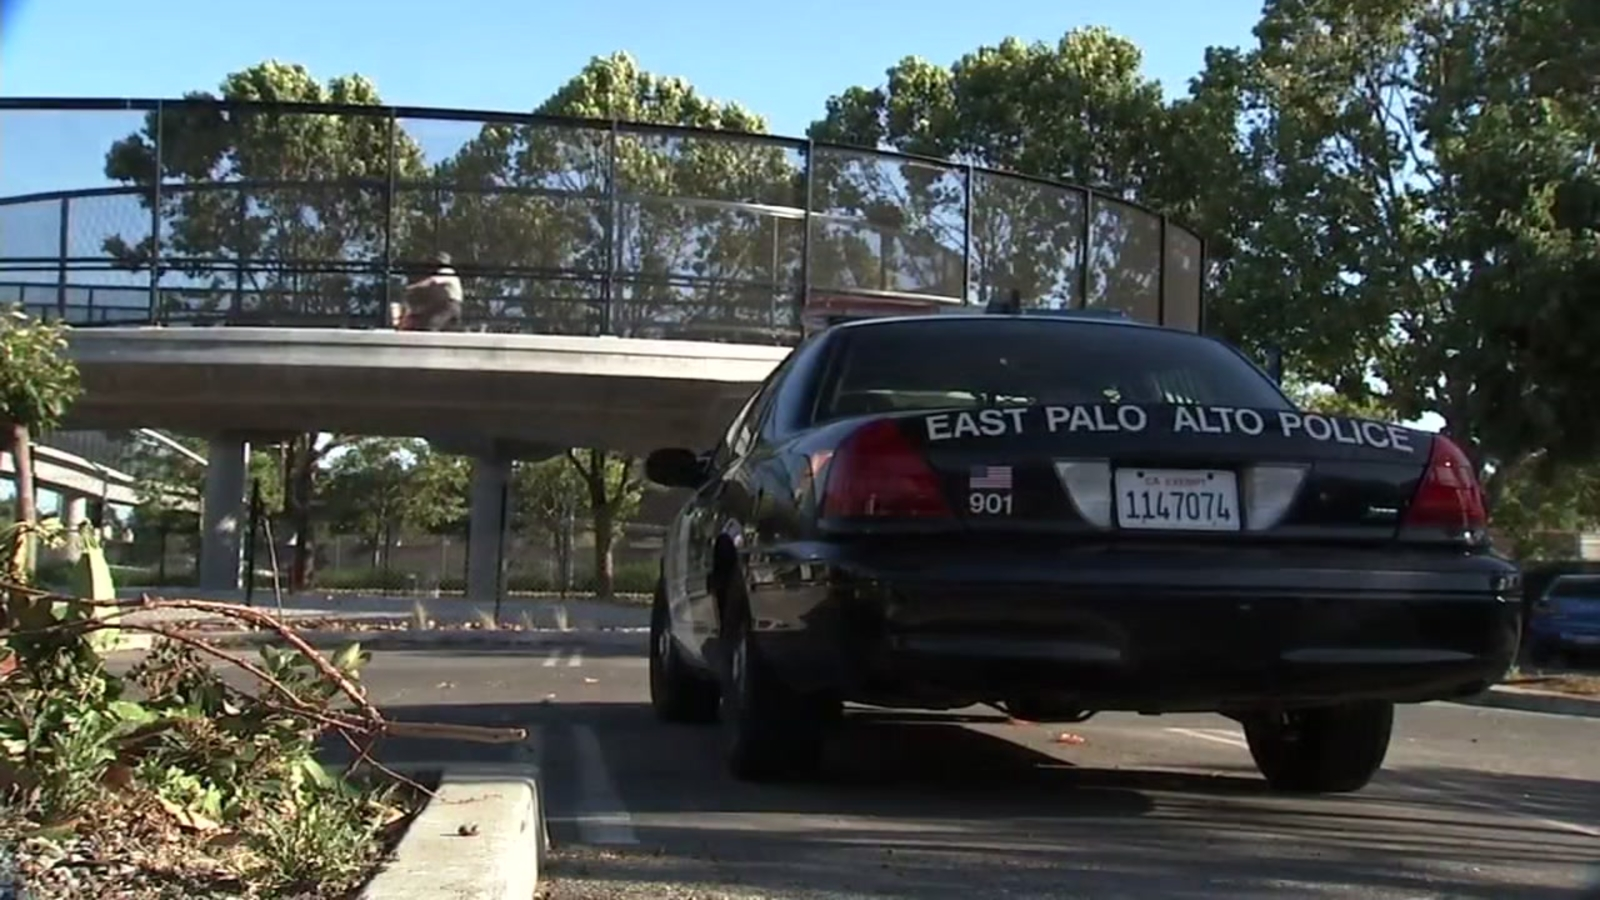 Police looking for group of teens who attacked 2 people on East Palo Alto pedestrian bridge